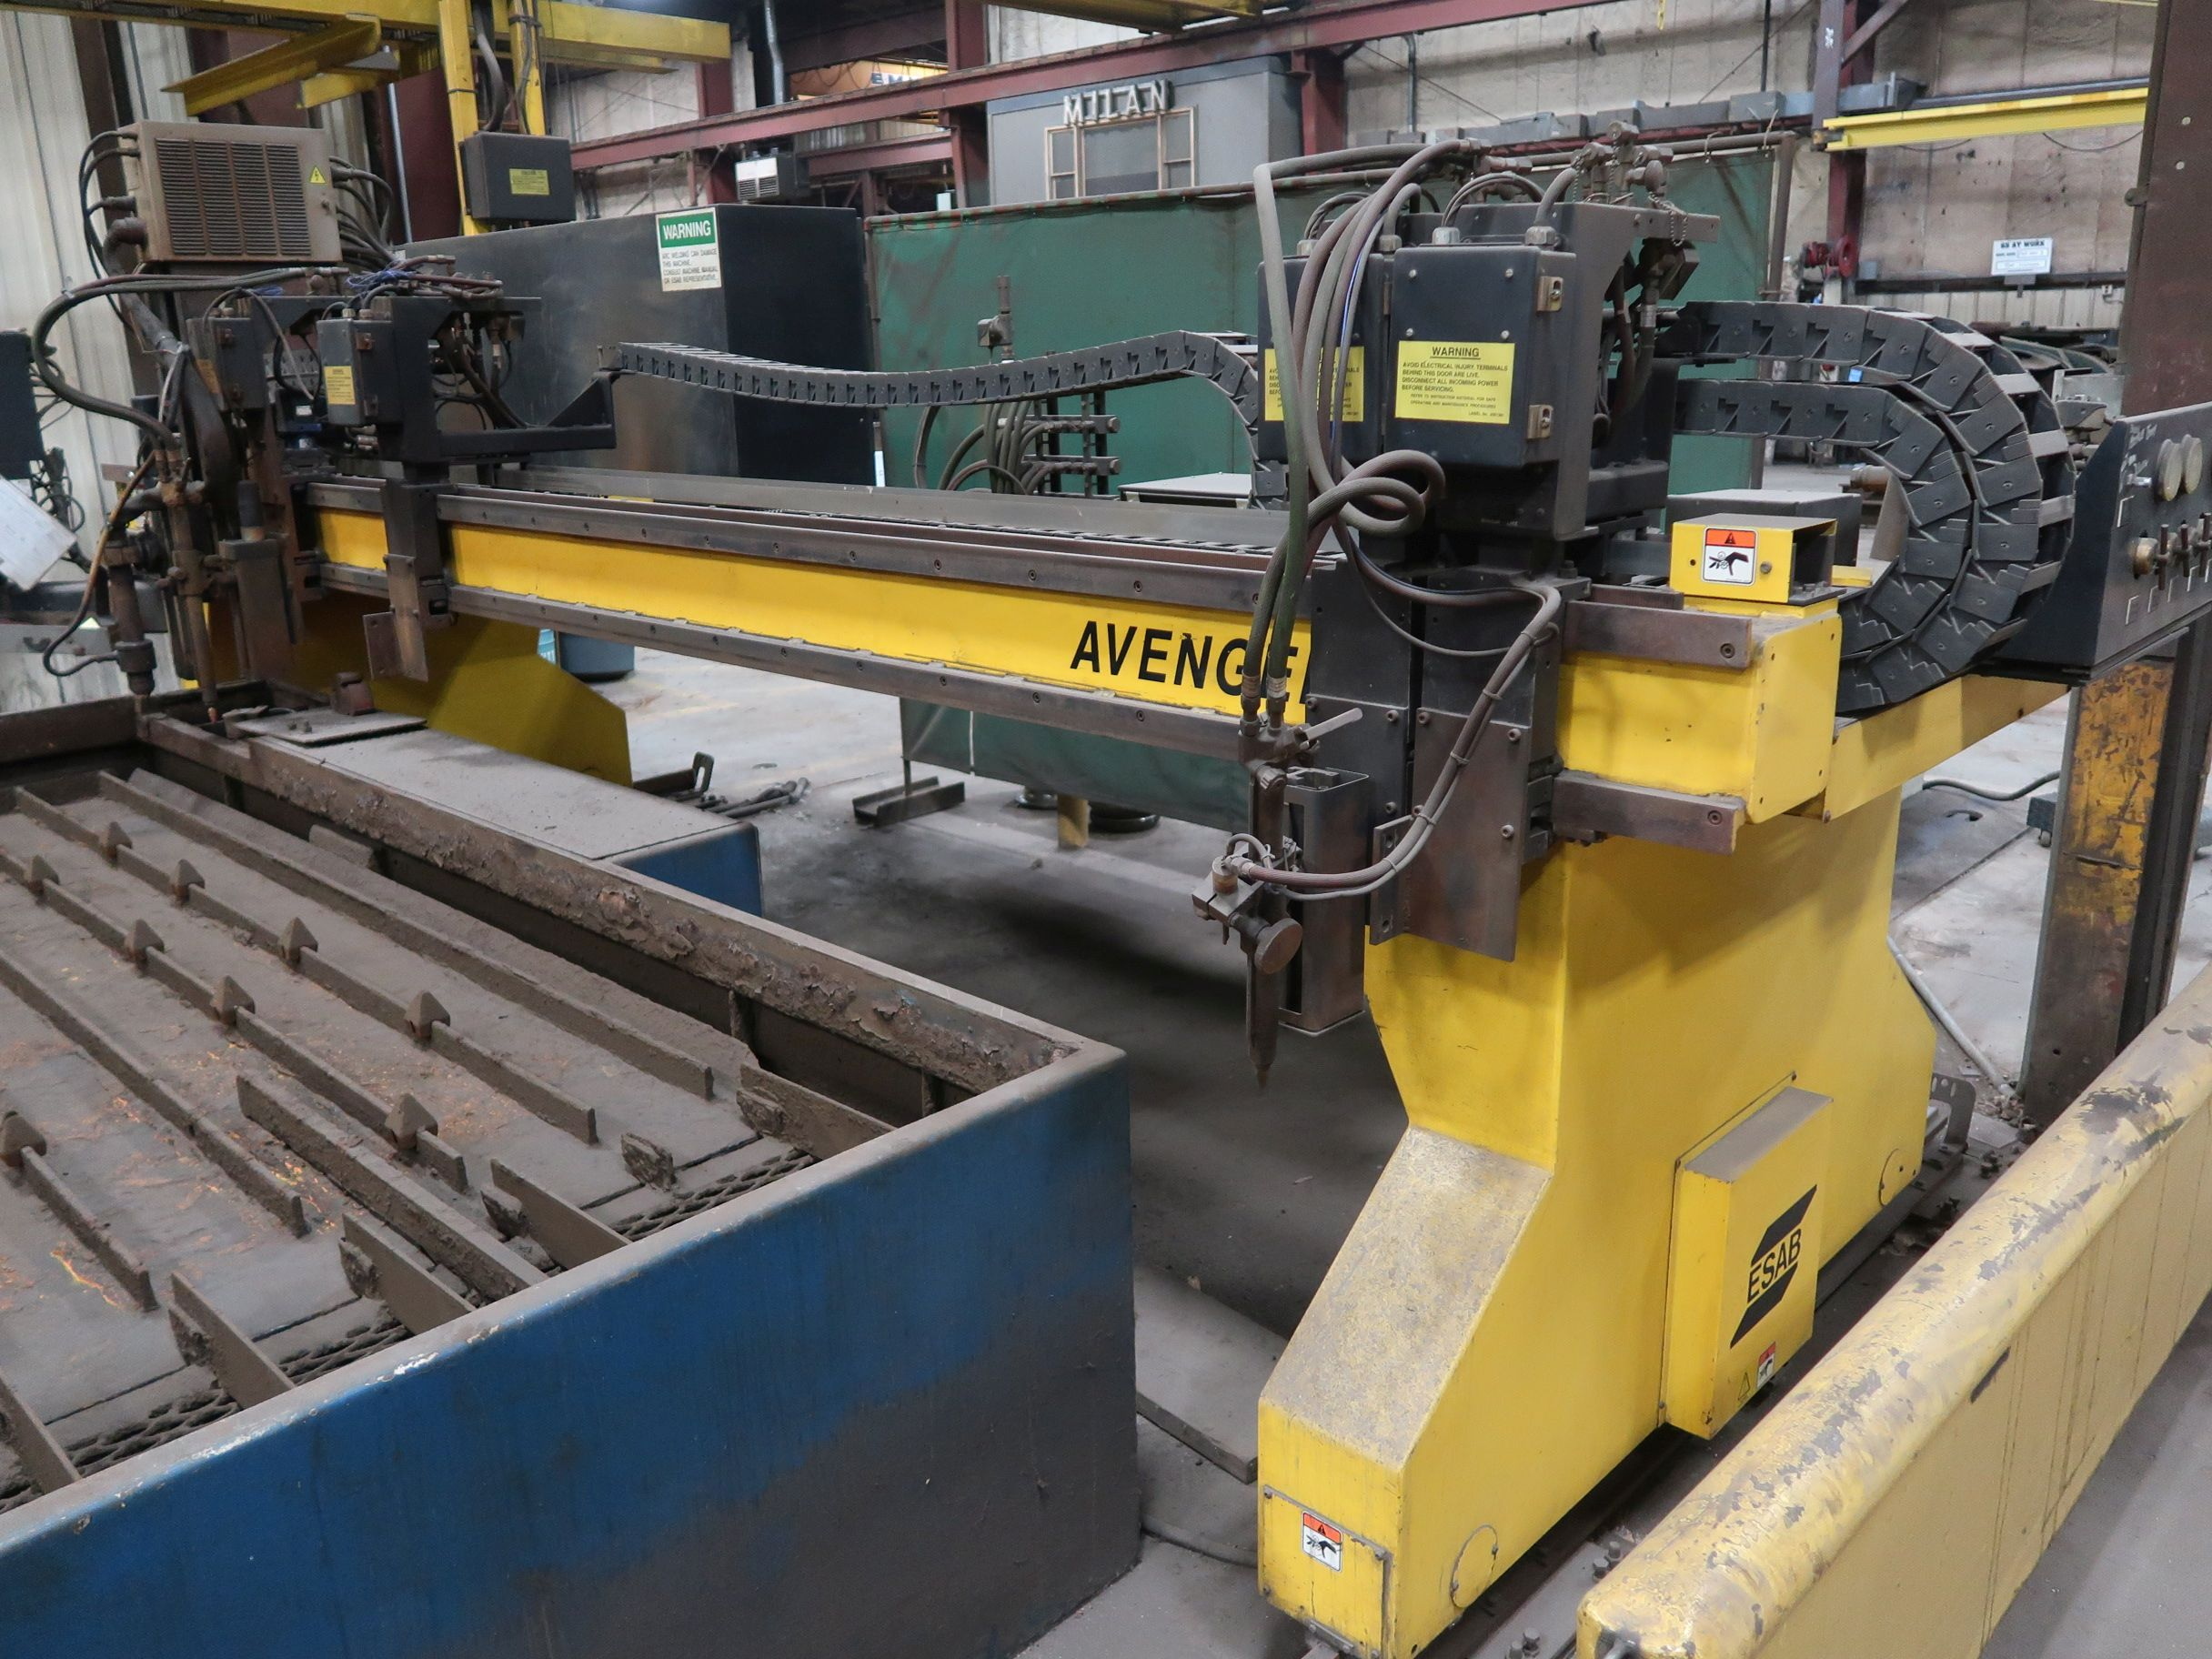 12' X 40' ESAB MODEL AVENGER 1-12 VISION PLASMA TABLE W/ BURNY 10 CONTROL; S/N 0560986386, UPDATED - Image 14 of 23